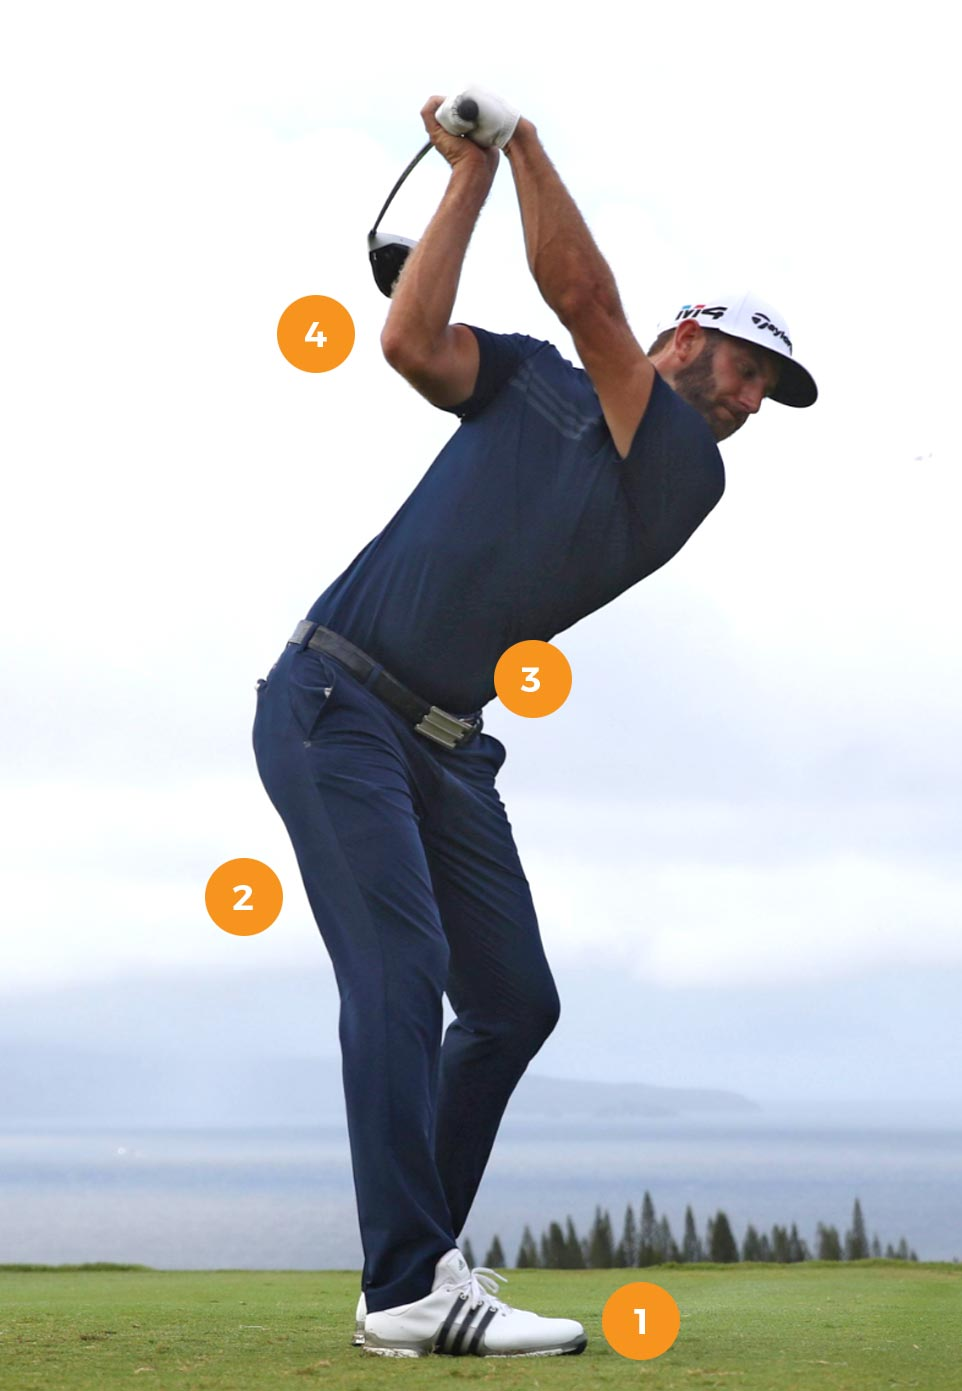 Dustin Johnson swing strength image